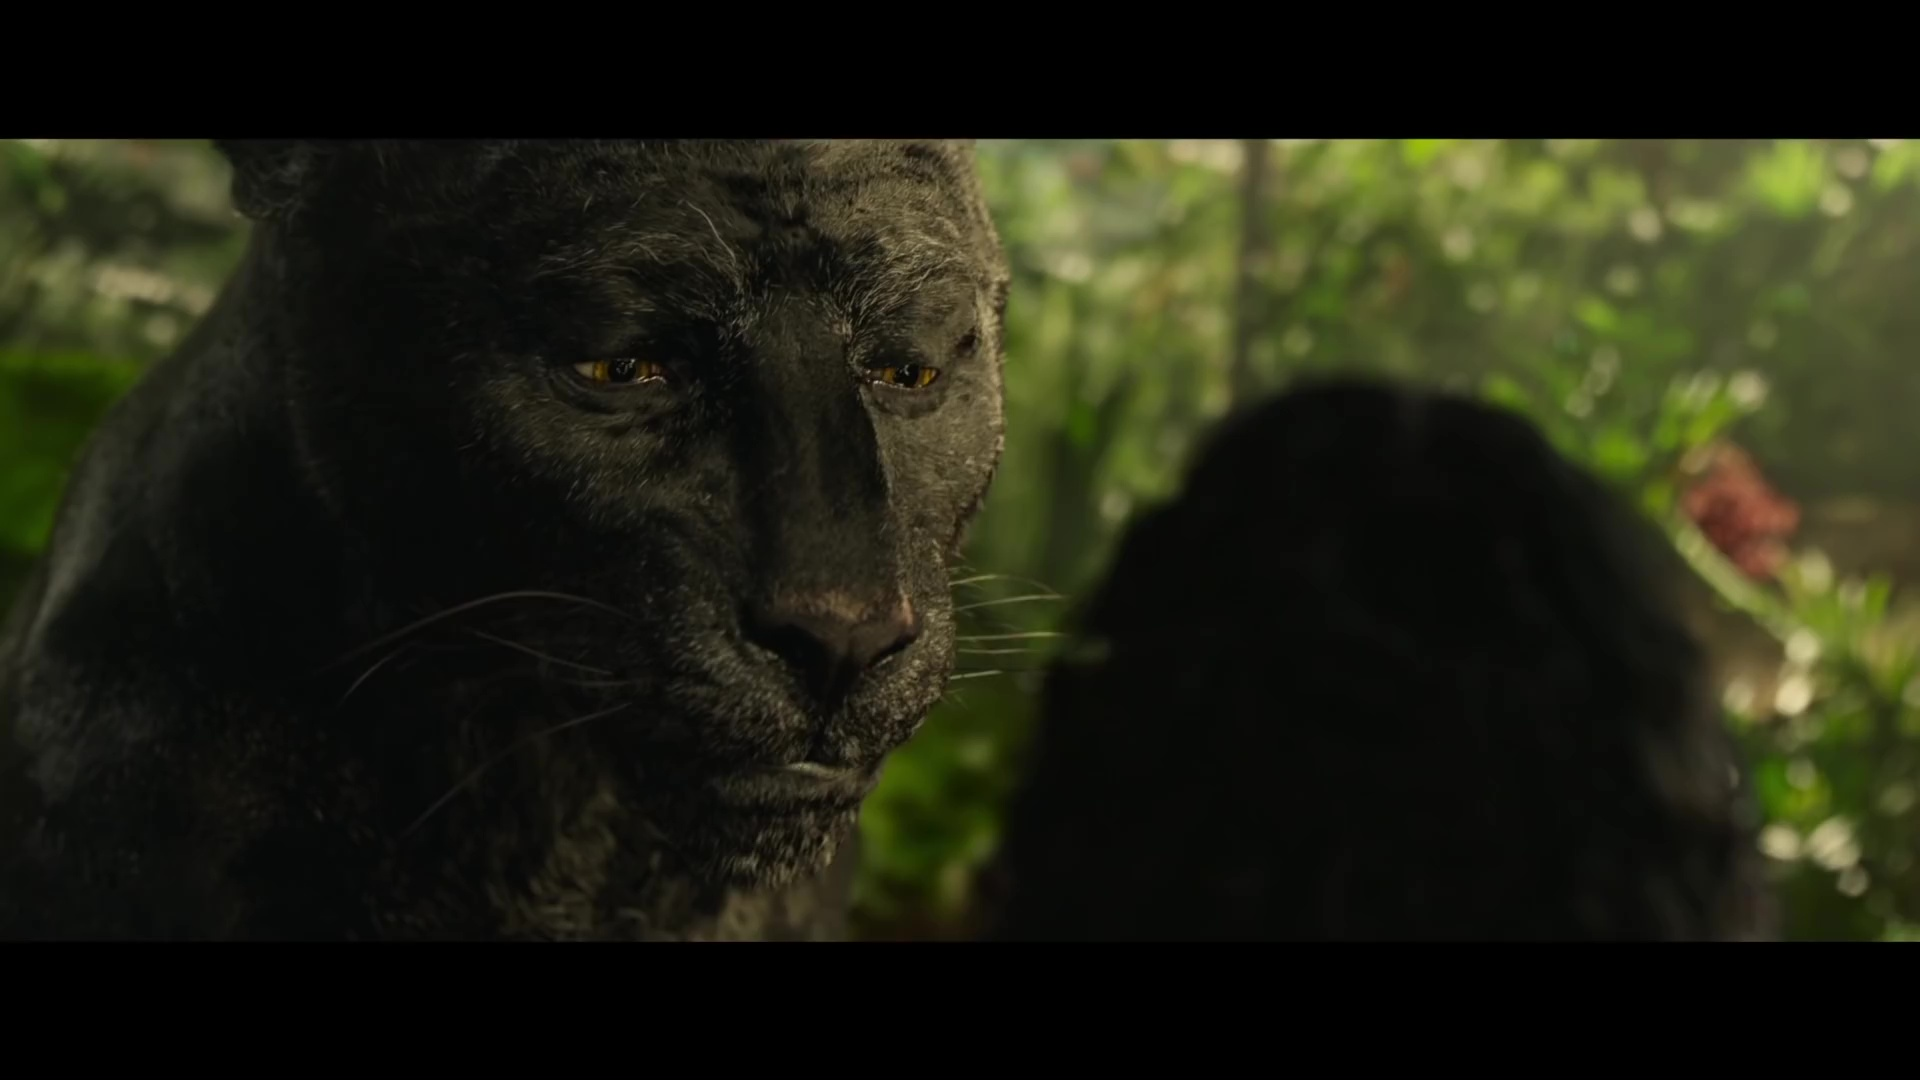 Jungle Book vs Mowgli bagheera_mowgli_